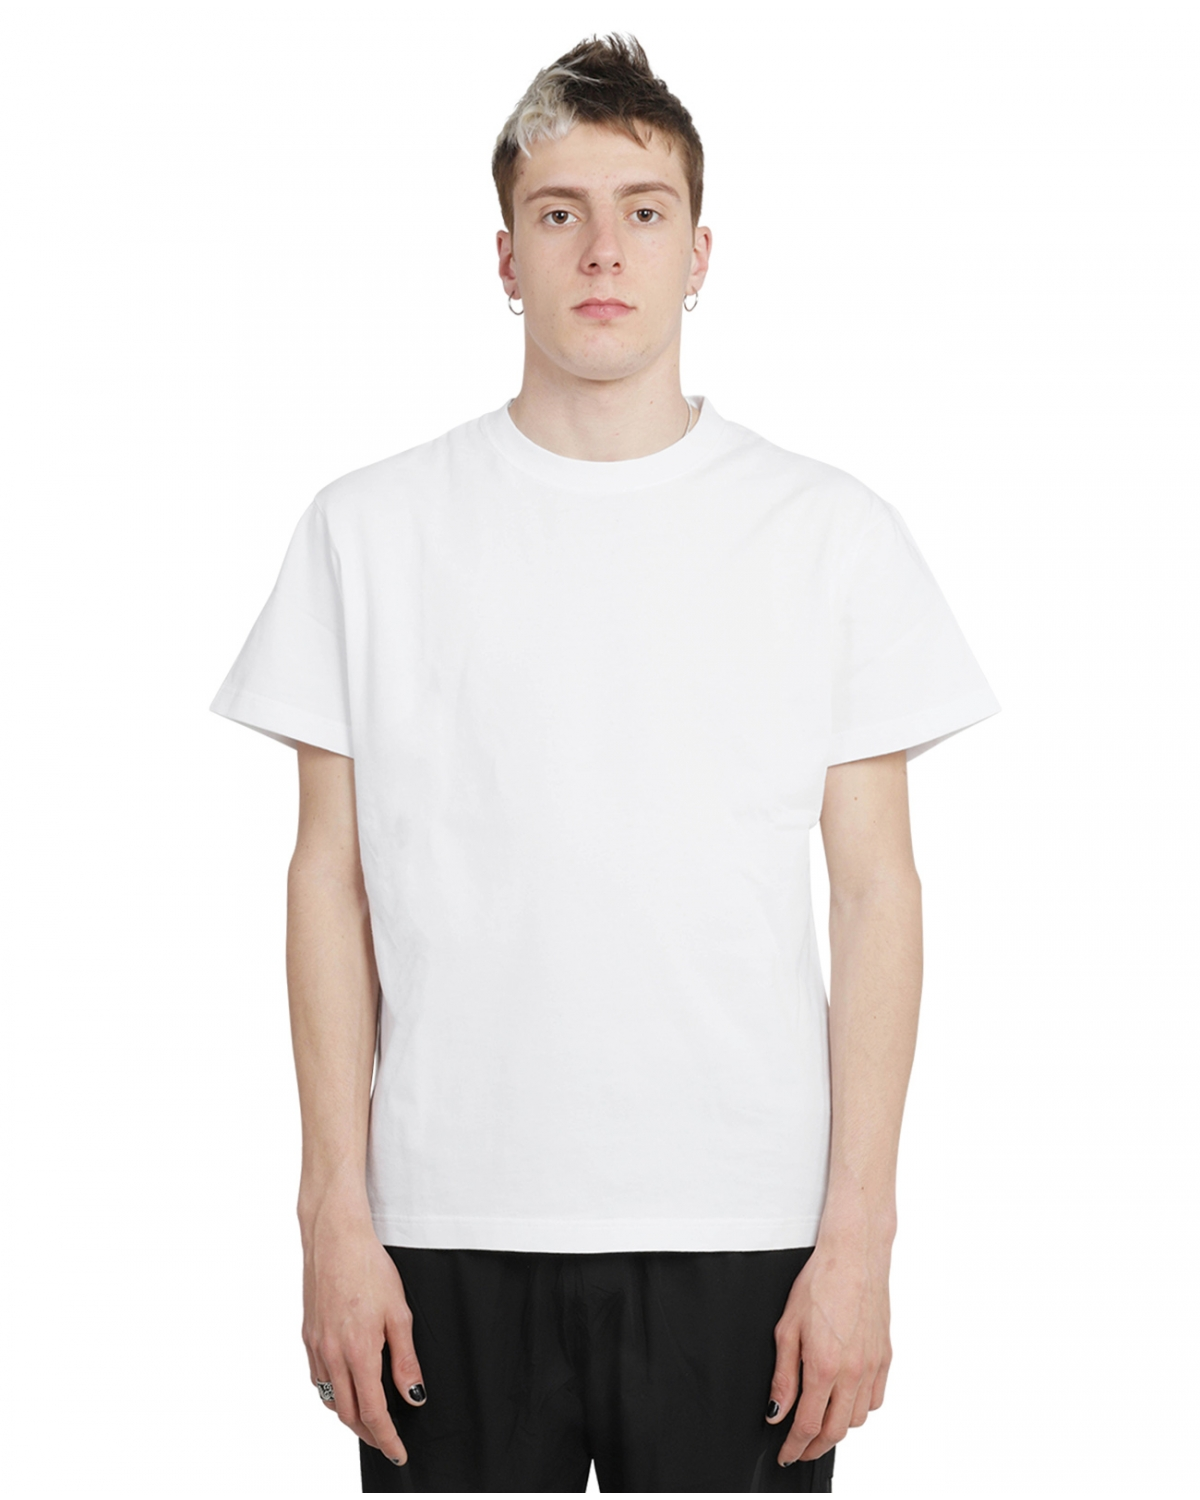 A-COLD-WALL* white graphic tee